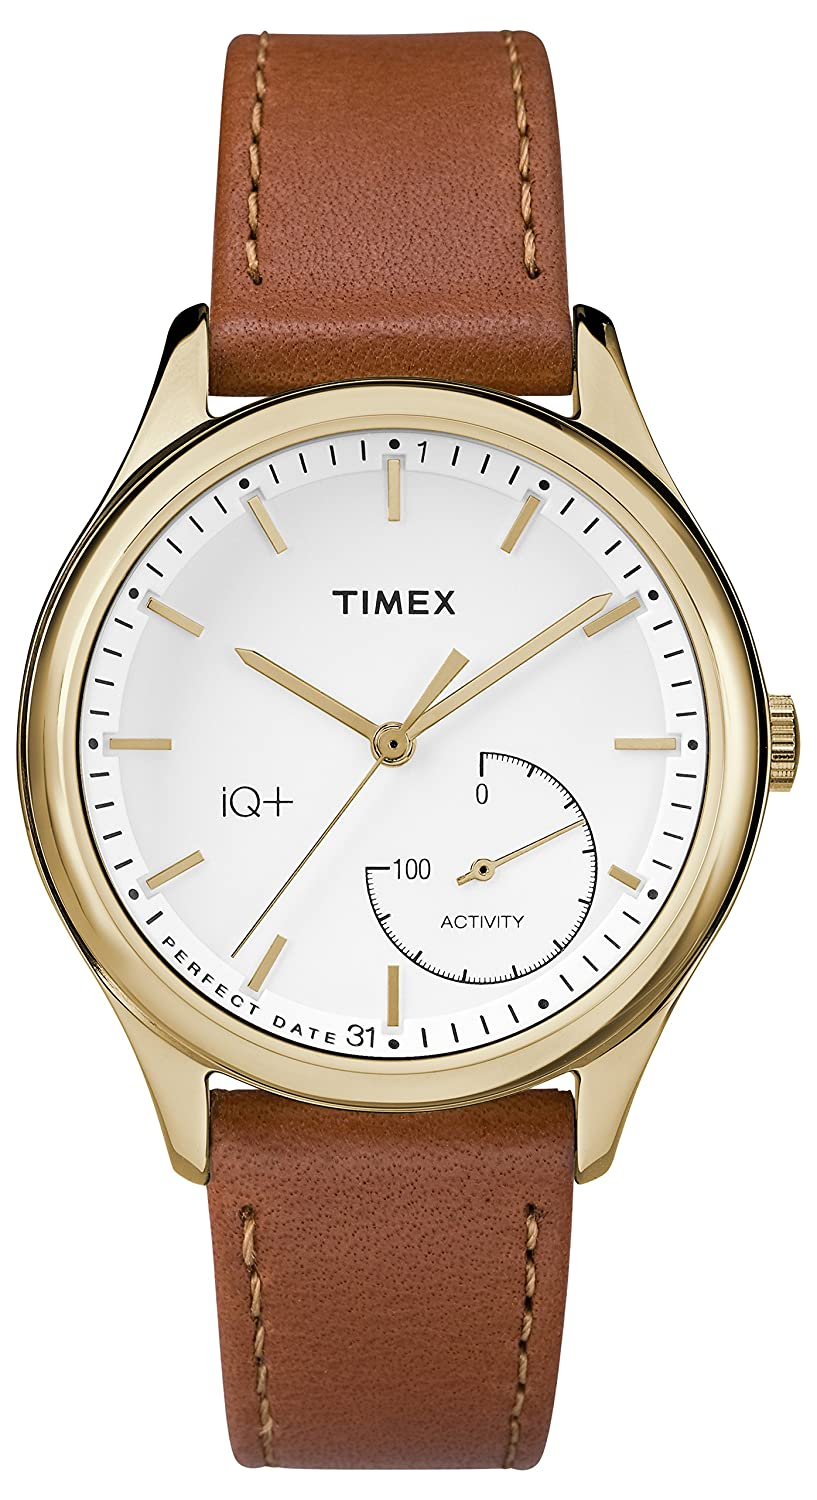 CDM product Timex Women's TWG013600L3 Fashion IQ+ Move White Dial and Brown Leather Strap Additional Silicone Strap Watch big image